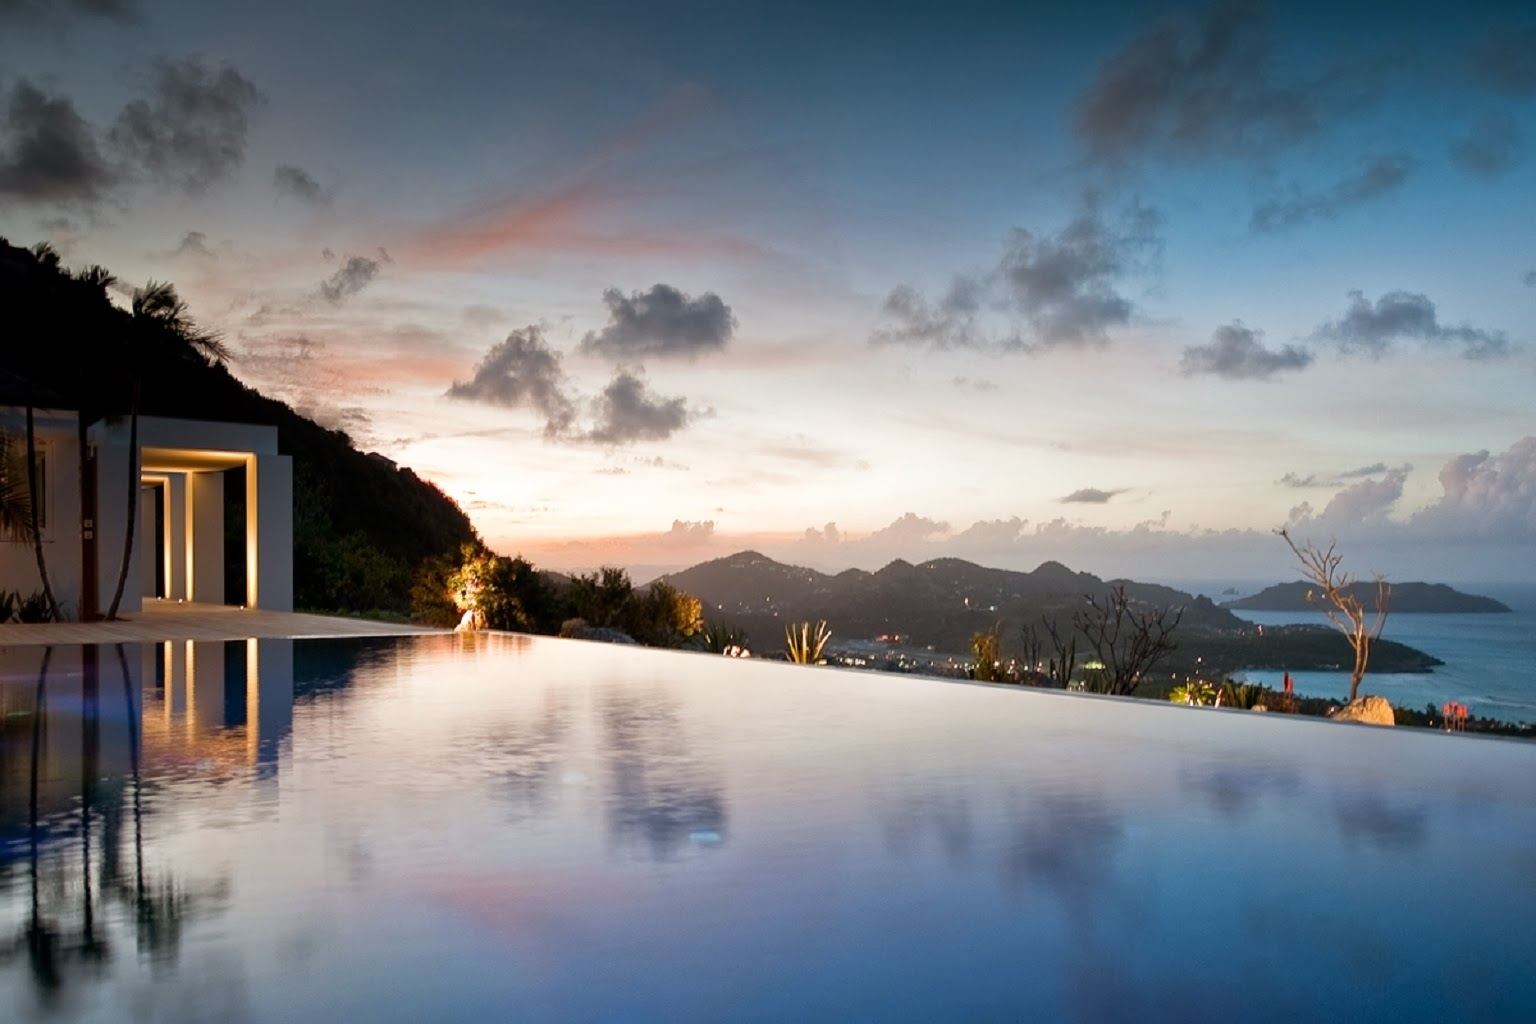 st. barth vacation rentals - st. barth properties